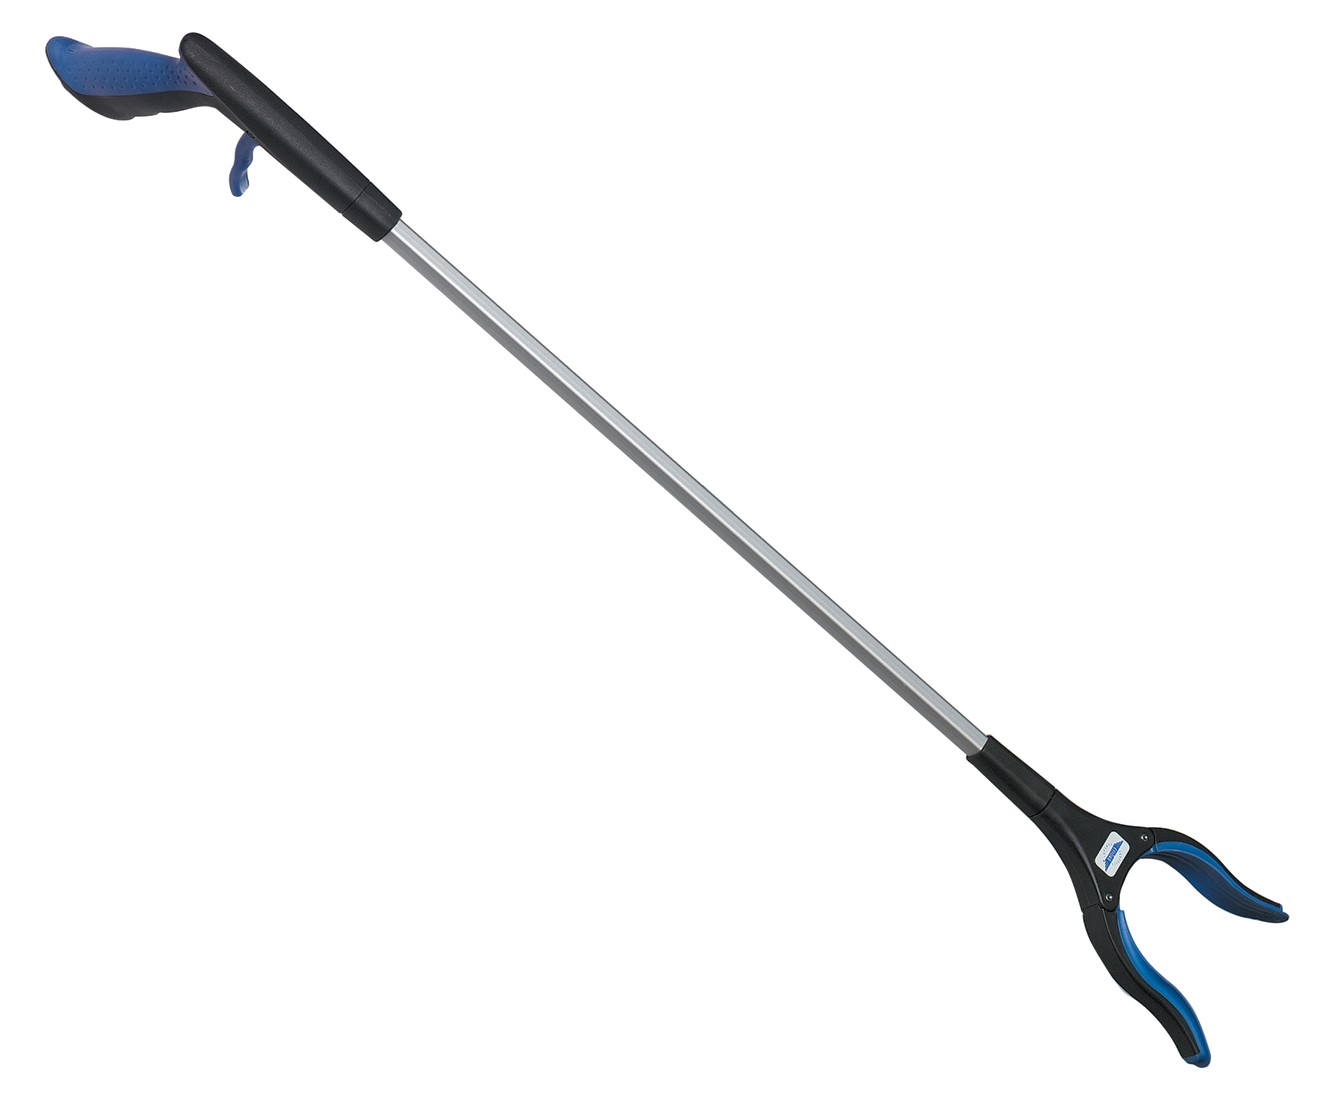 Litter Picker - Used to pick up litter. Especially helpful for litter in hard to reach spots.